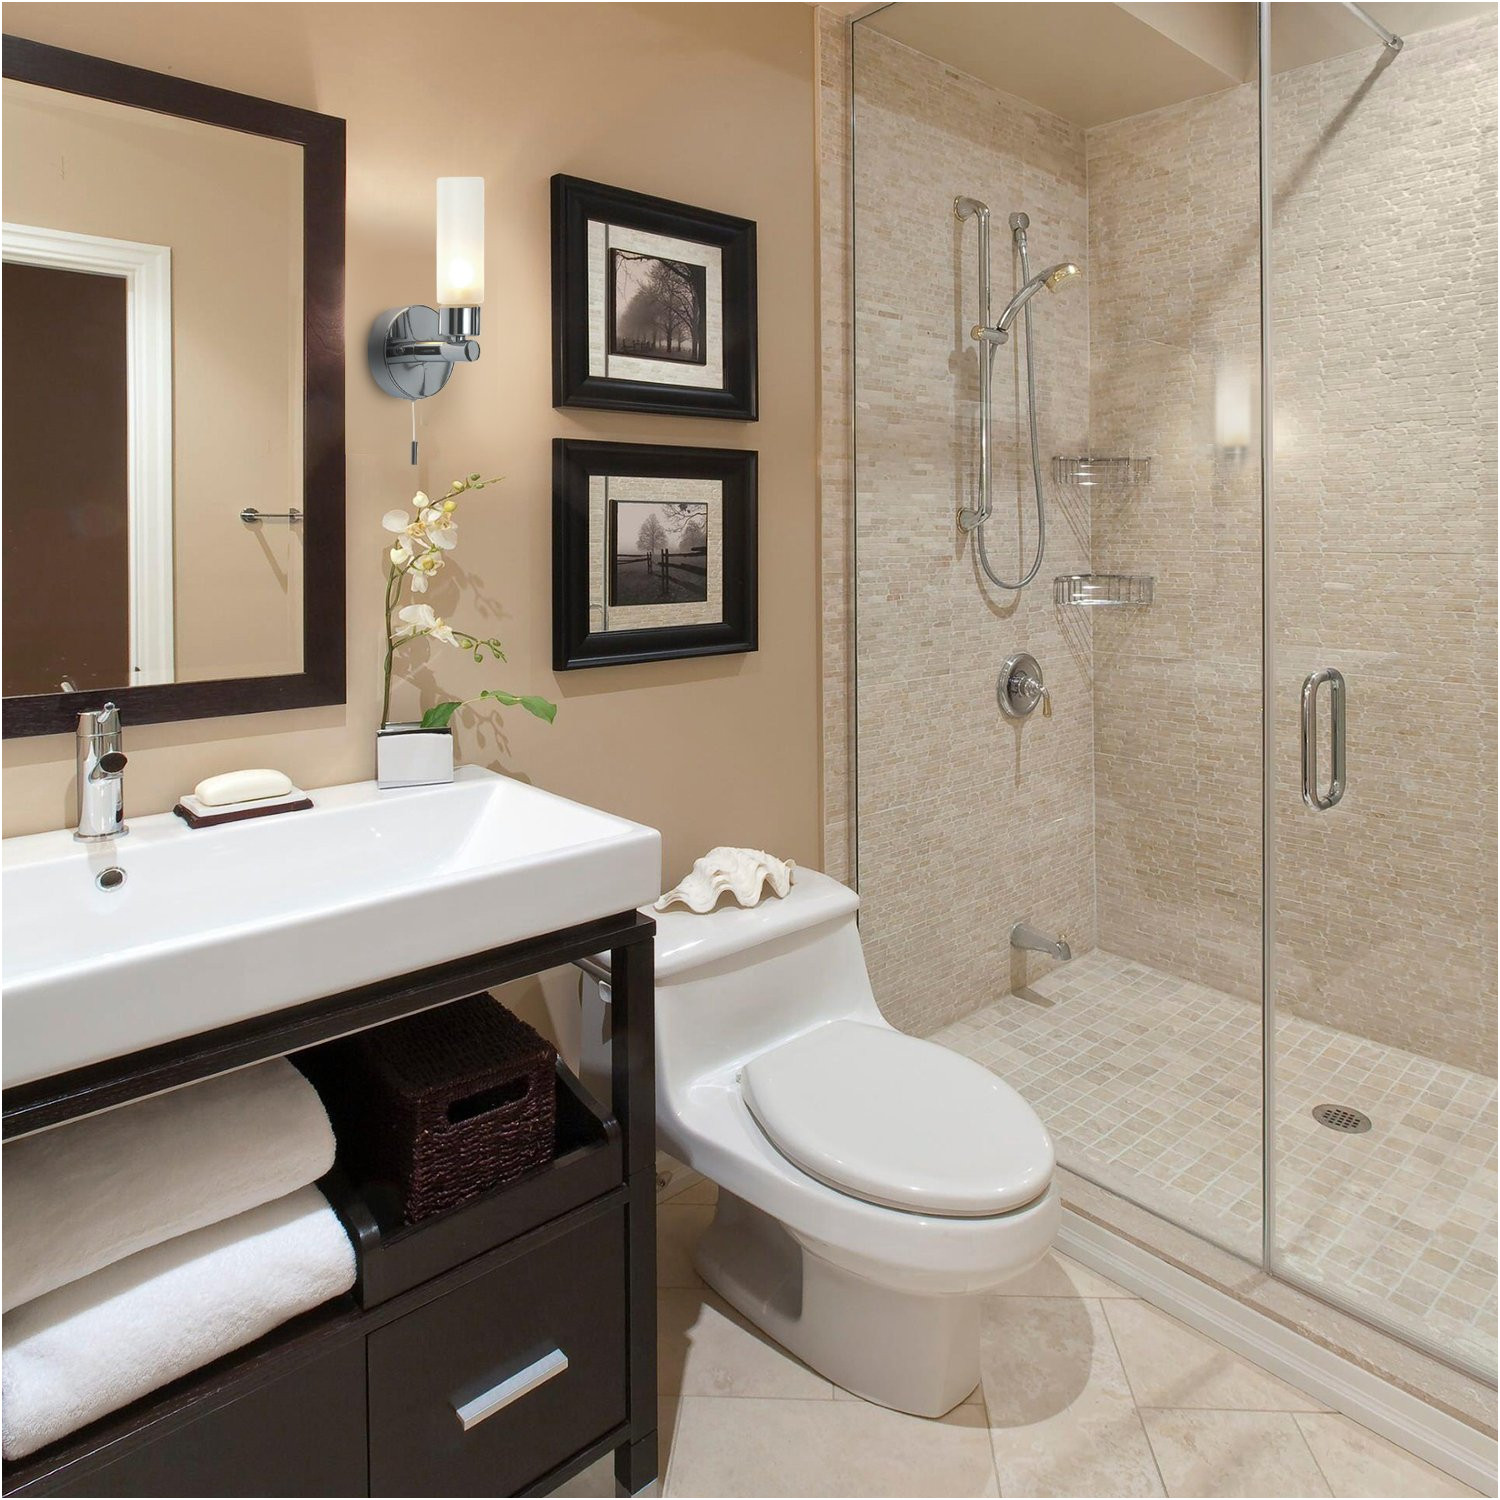 Best Of Over Mirror Bathroom Light with Pull Cord